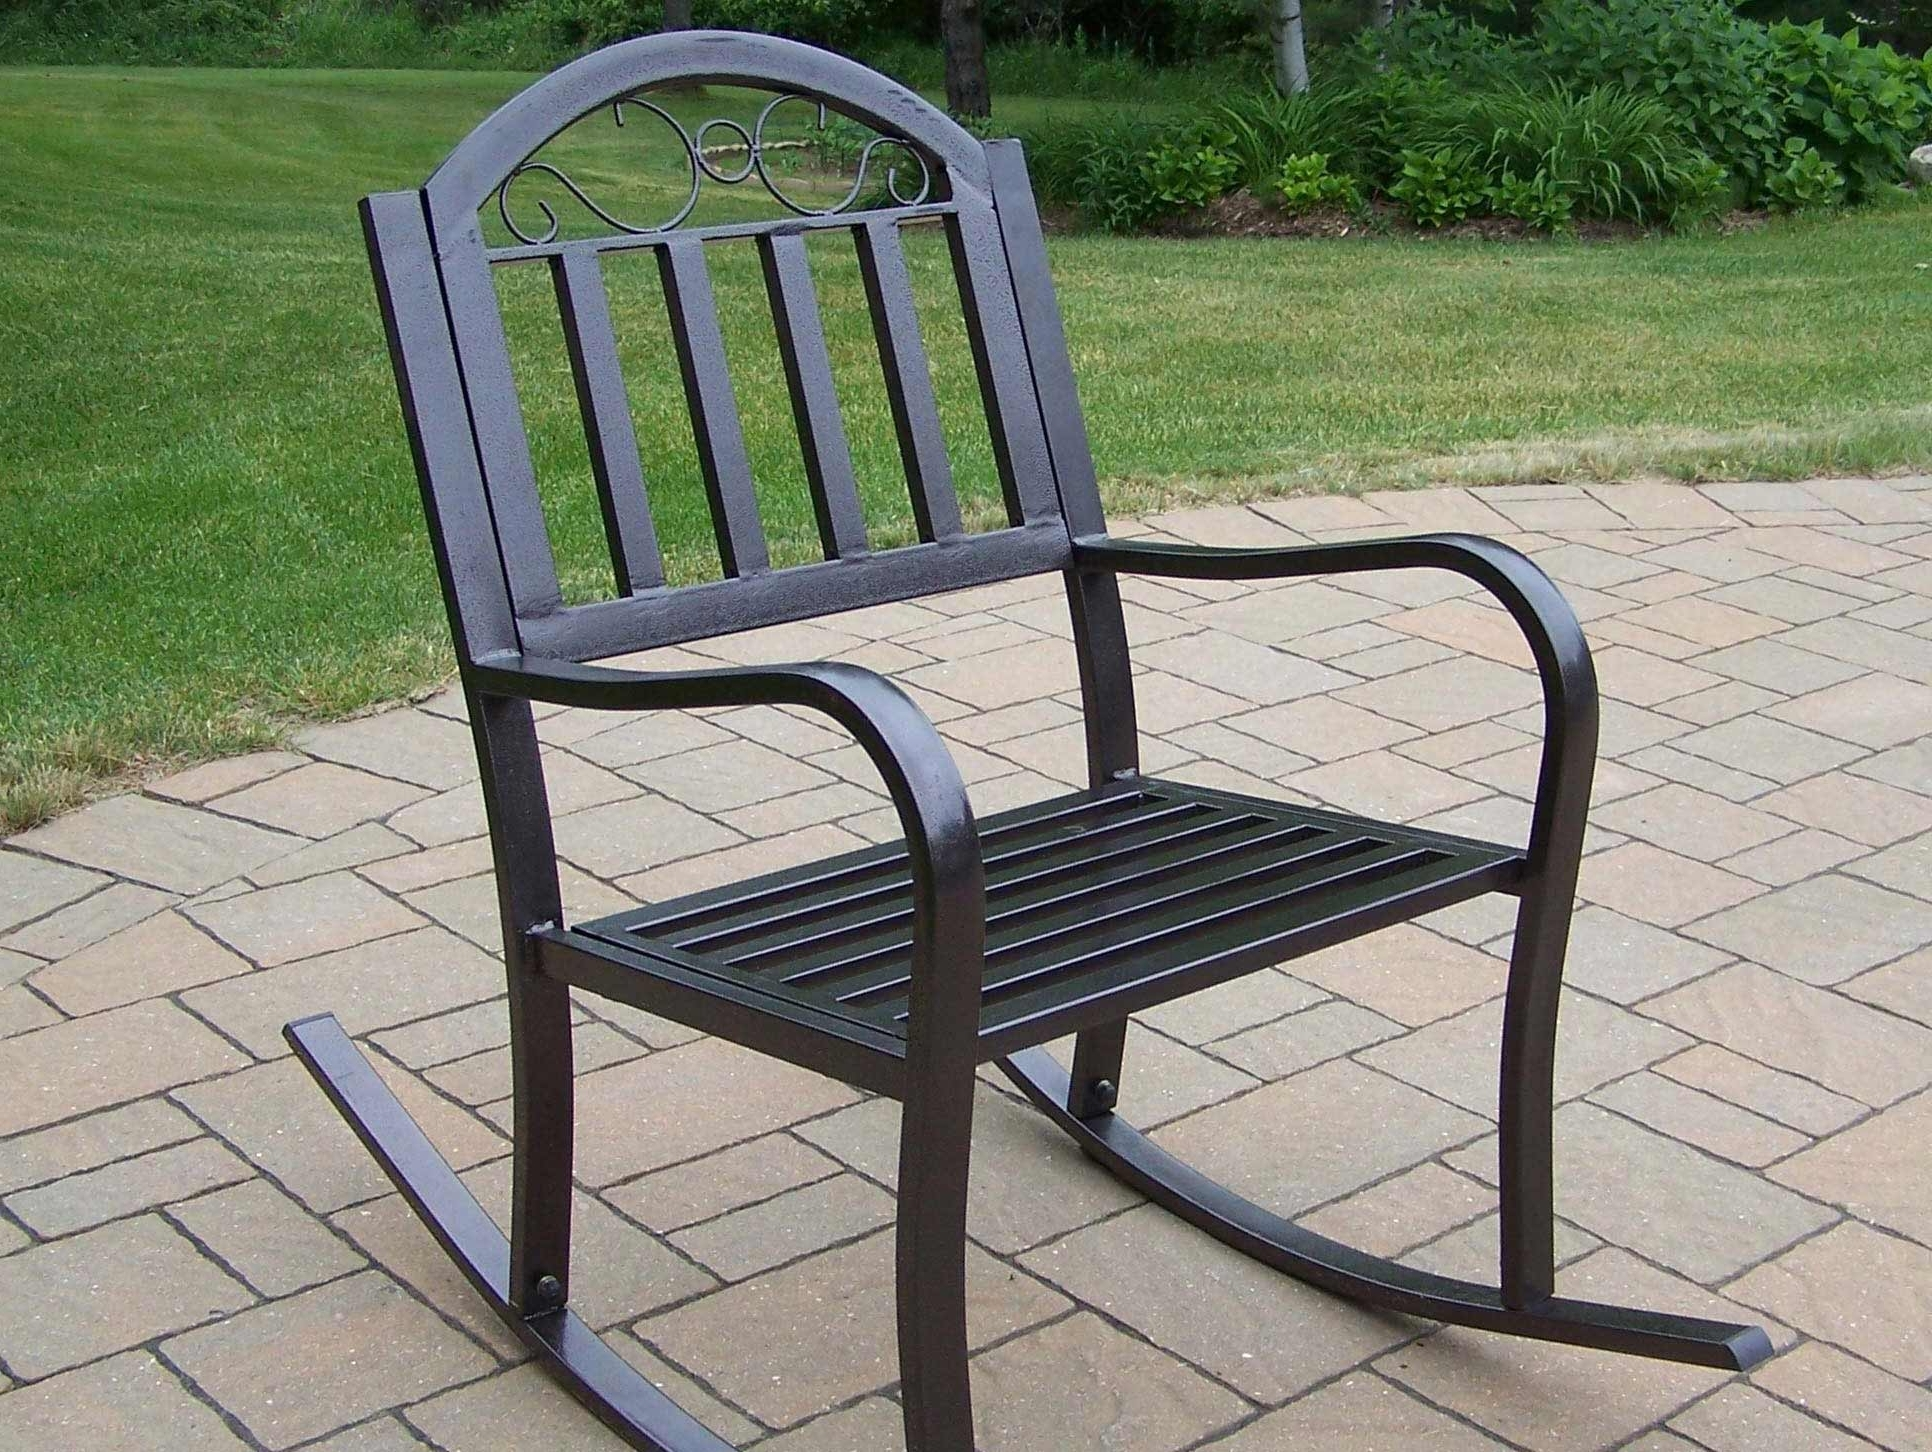 Wrought Iron Patio Rocker Chairs Icamblog Black Rocking Chair For With Regard To Fashionable Wrought Iron Patio Rocking Chairs (View 10 of 15)